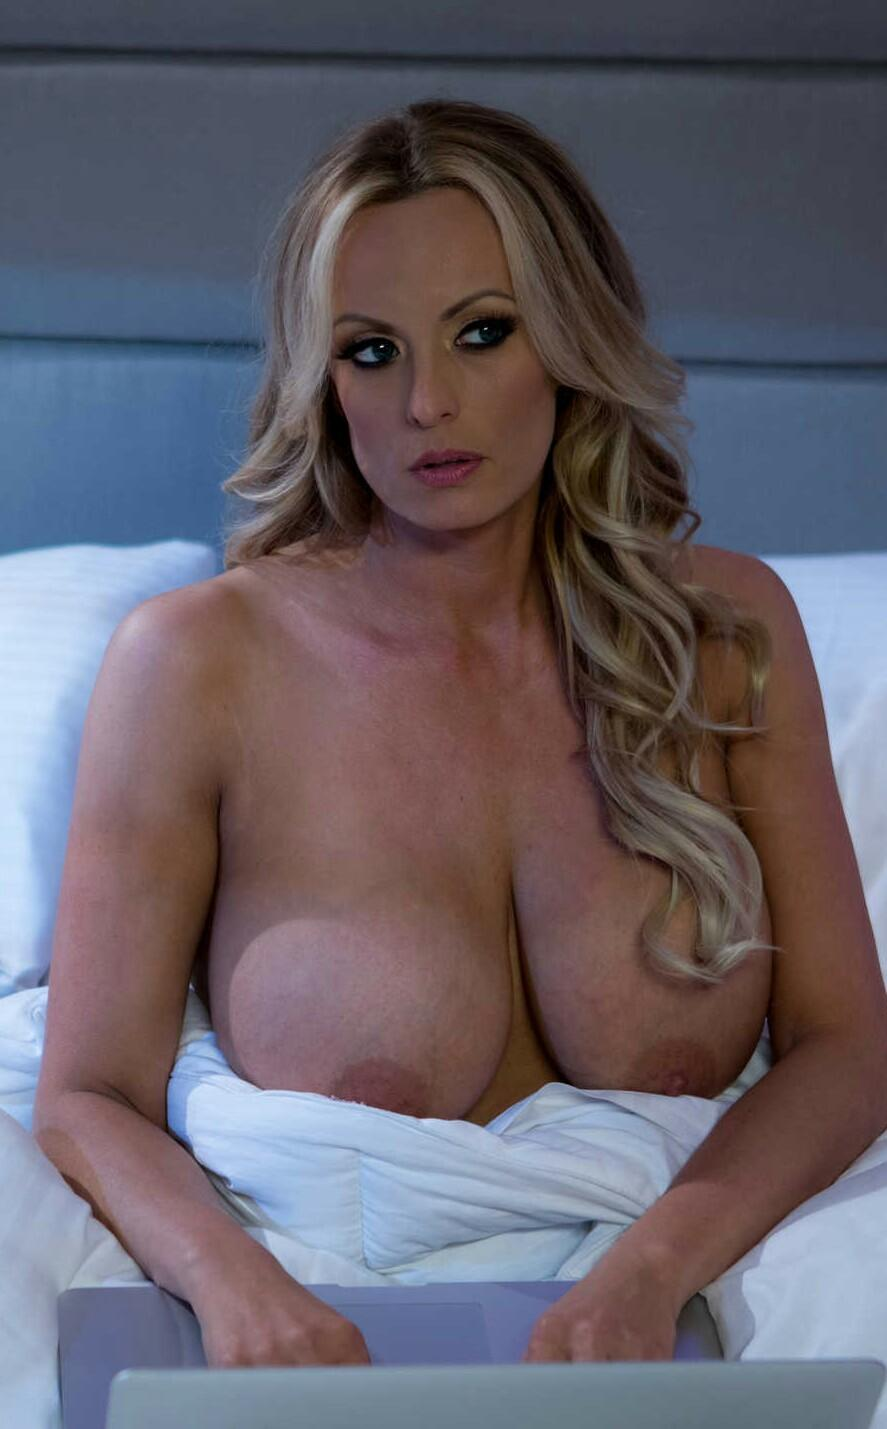 Stormy tits